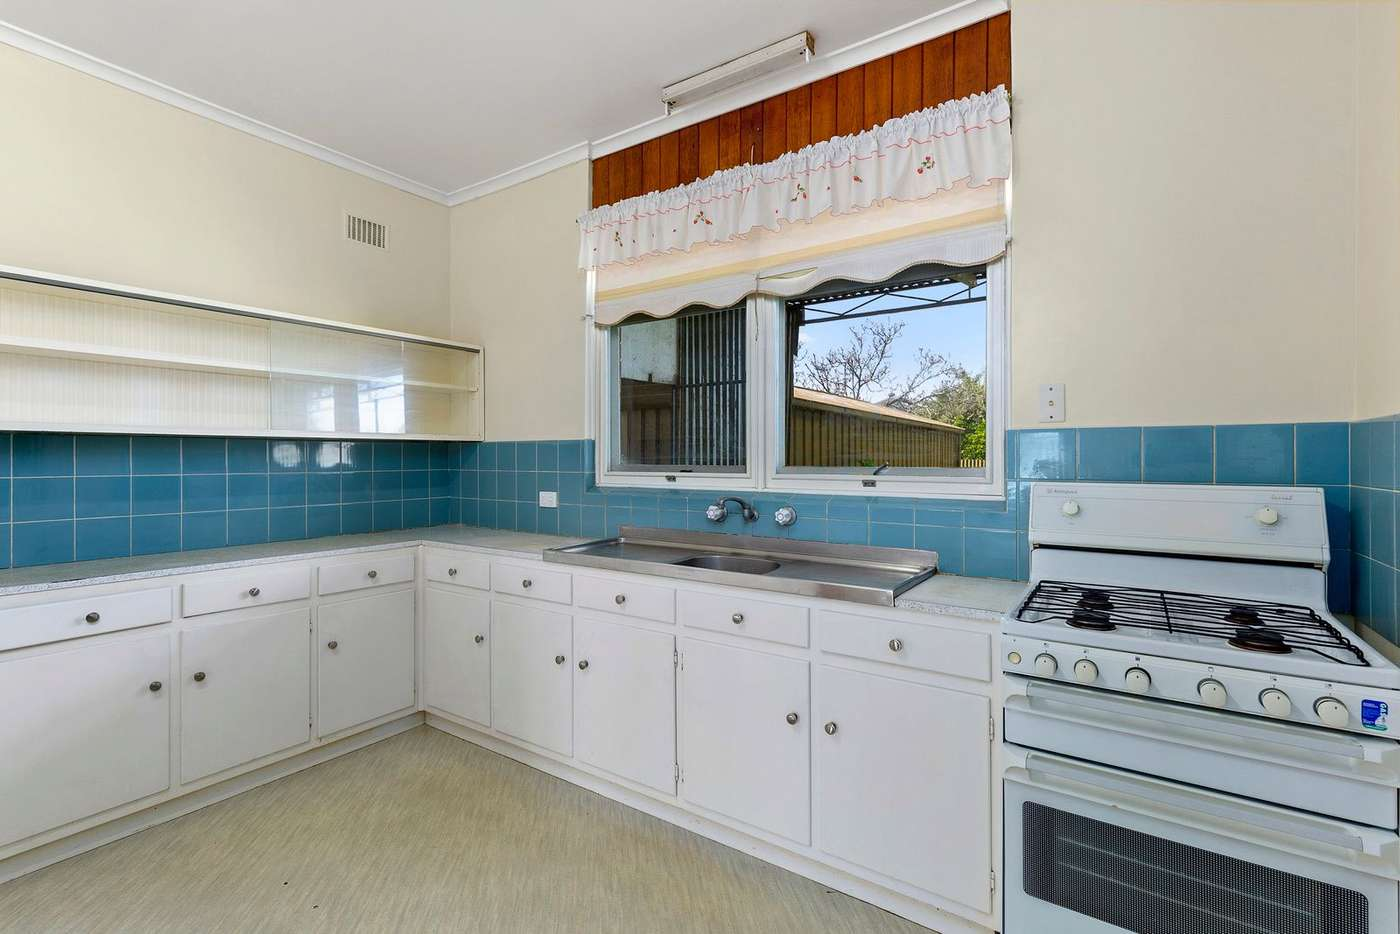 Sixth view of Homely house listing, 20 Waterhouse Road, South Plympton SA 5038